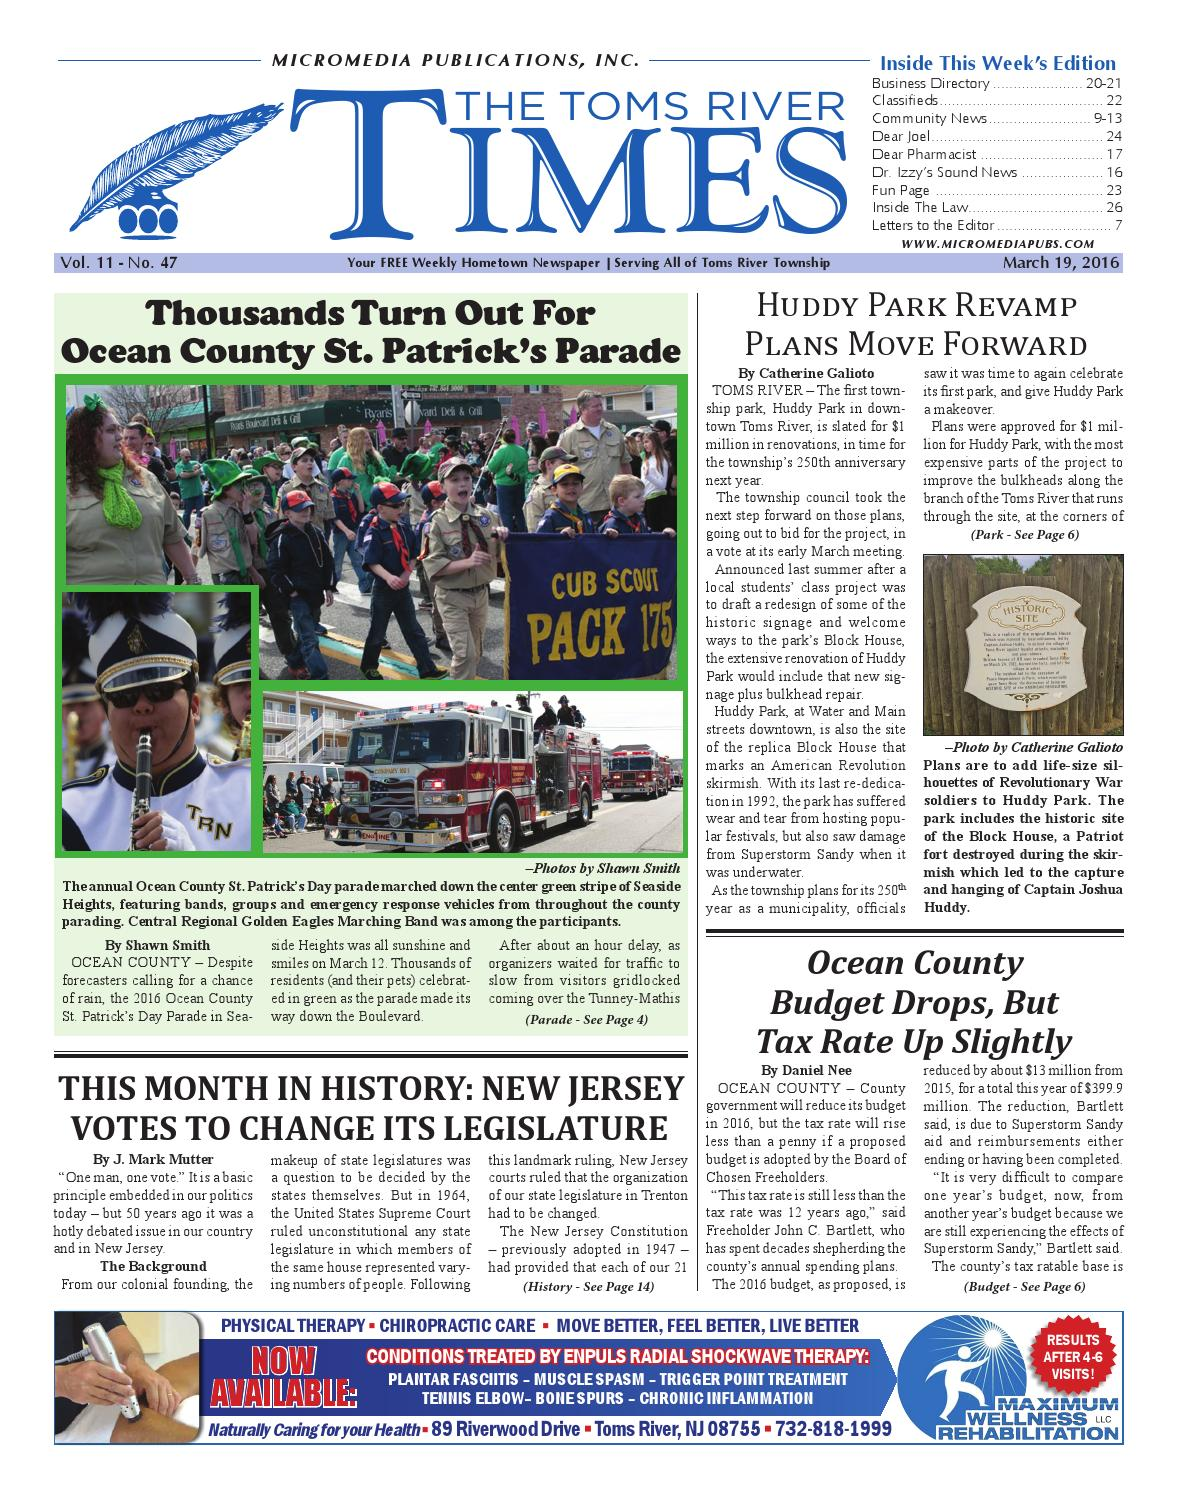 fdc7a4e369d9 2016-03-19 - The Toms River Times by Micromedia Publications Jersey ...